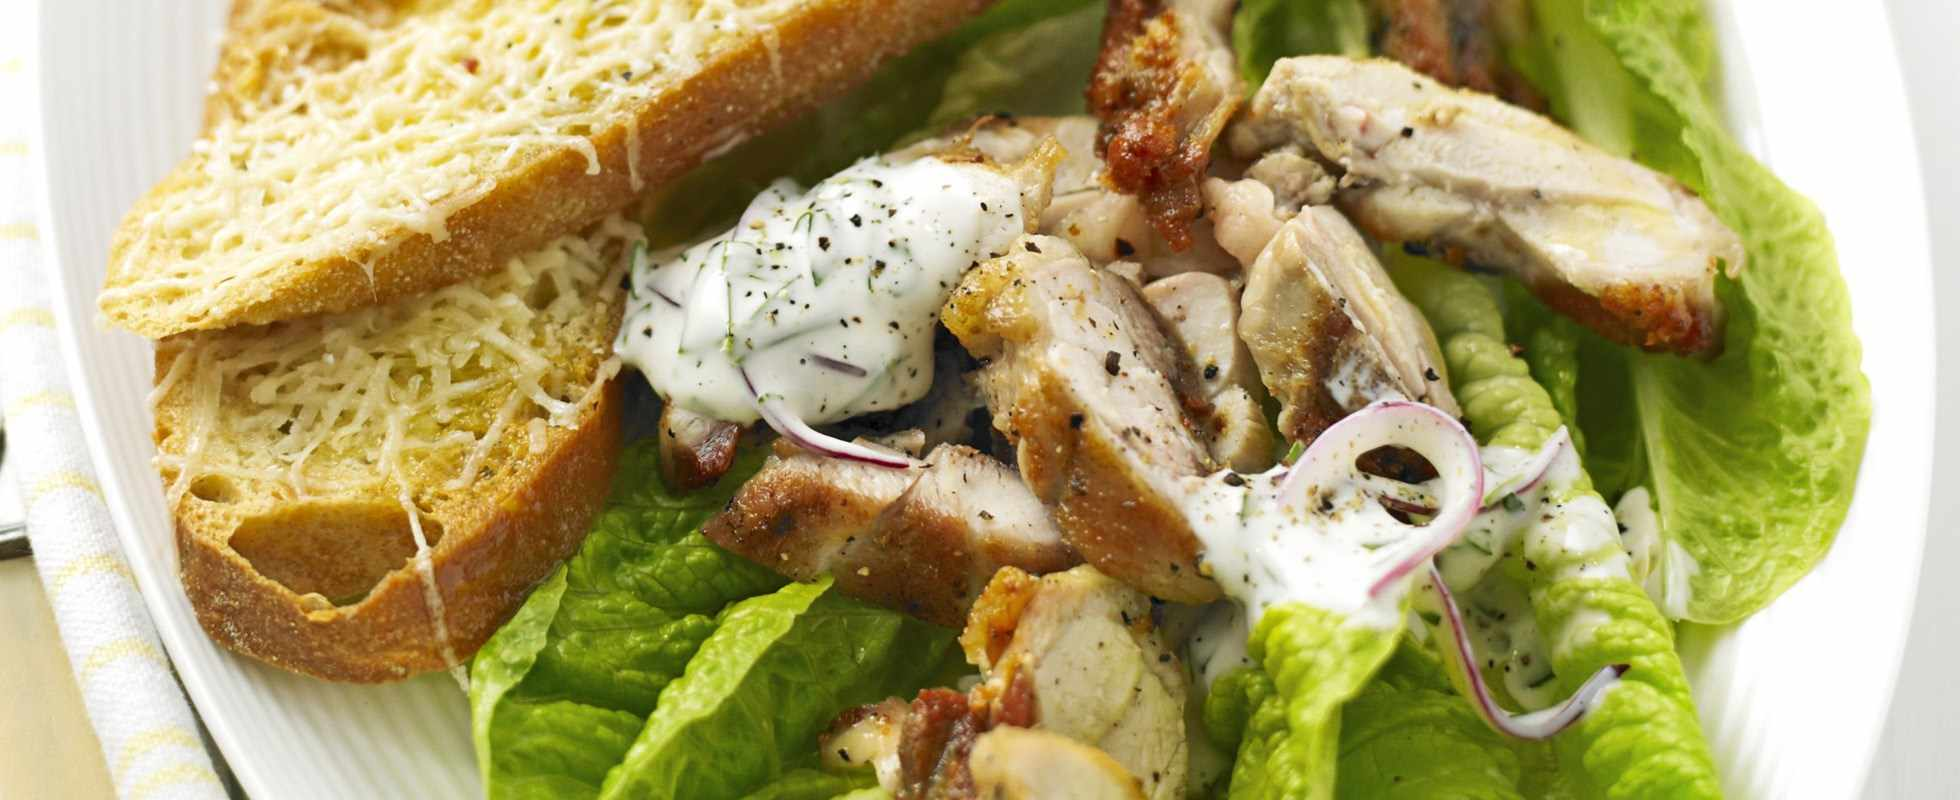 Griddled chicken salad with basil mayo